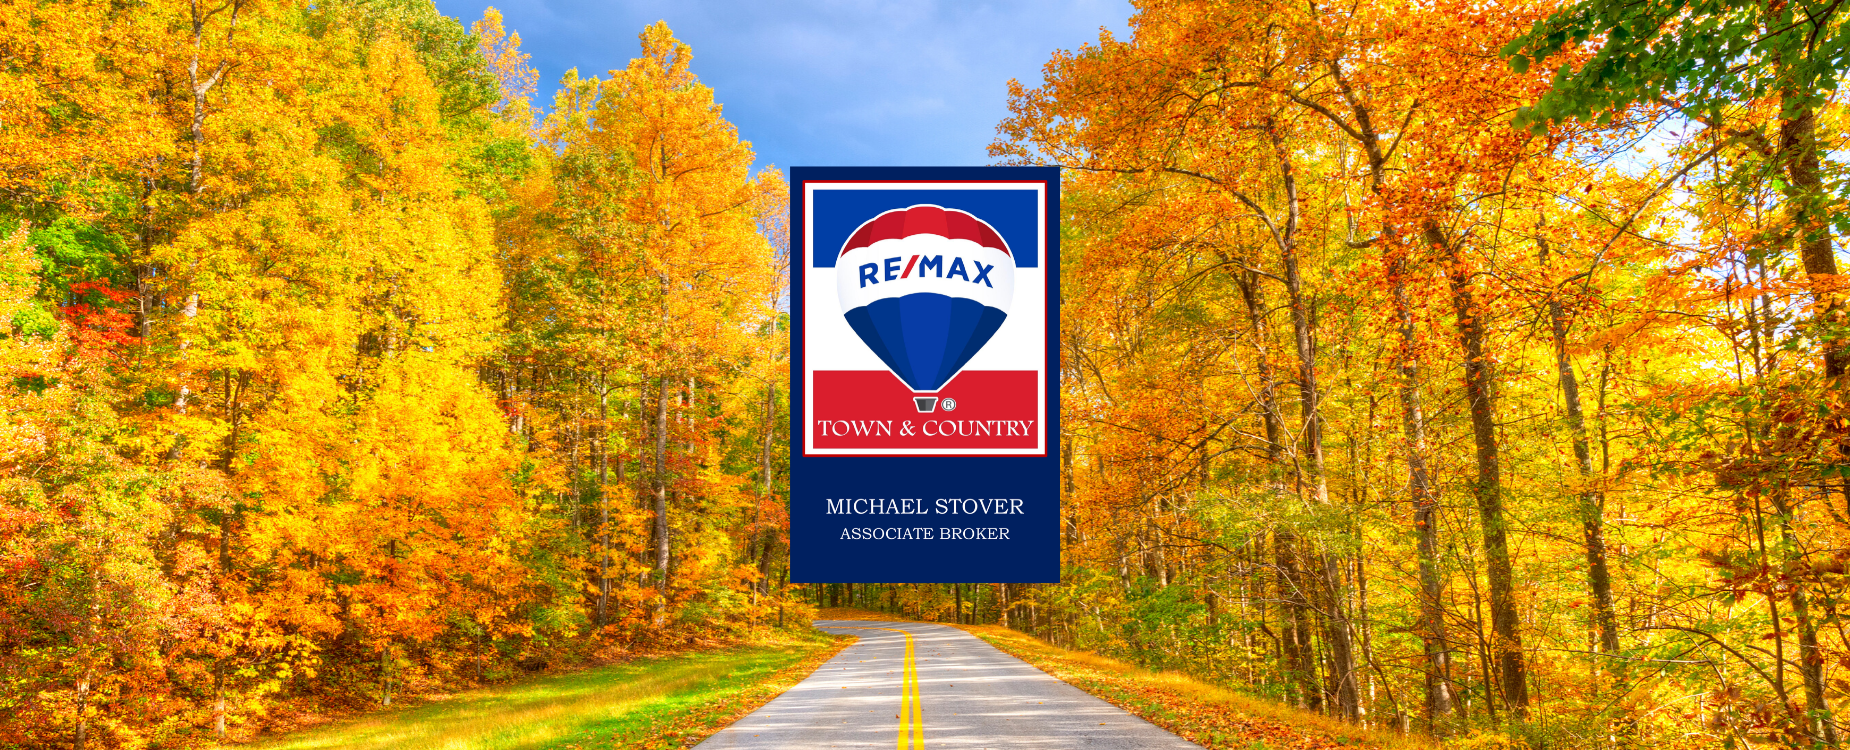 Mike Stover RE/MAX header 4